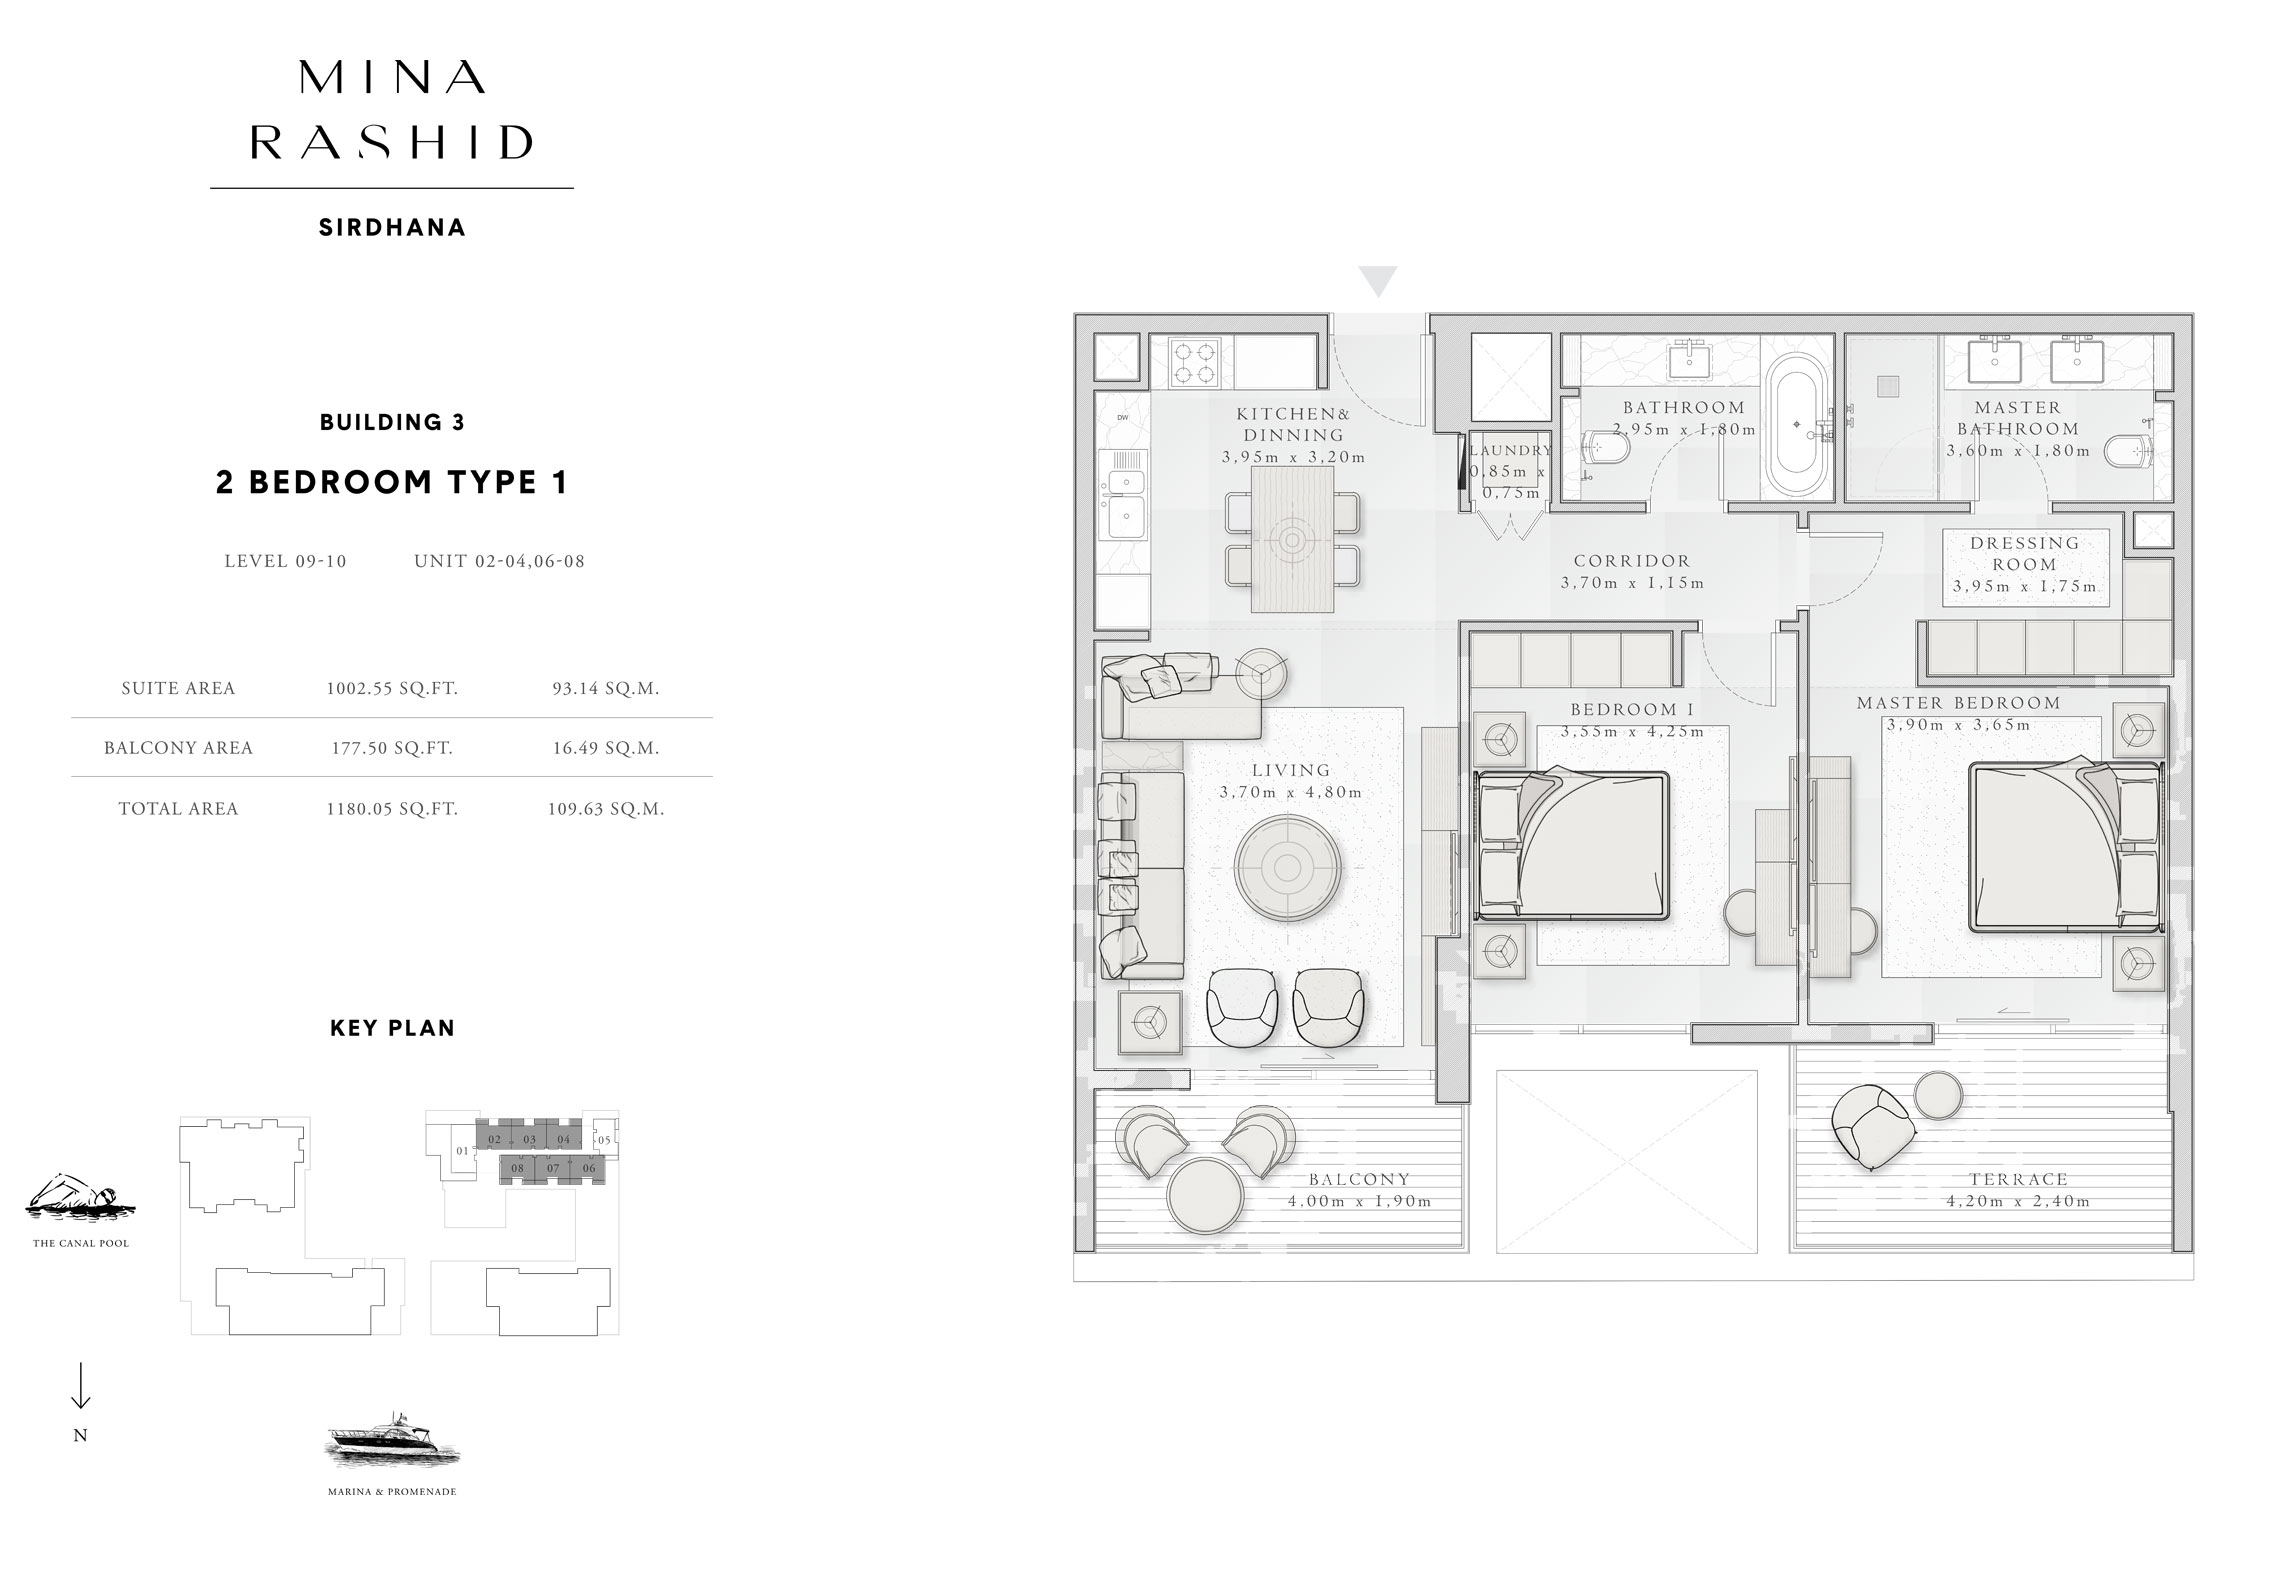 2-Bedroom-Type-1, Building-3, Level-9 to 10, Size-1180-Sq-Ft